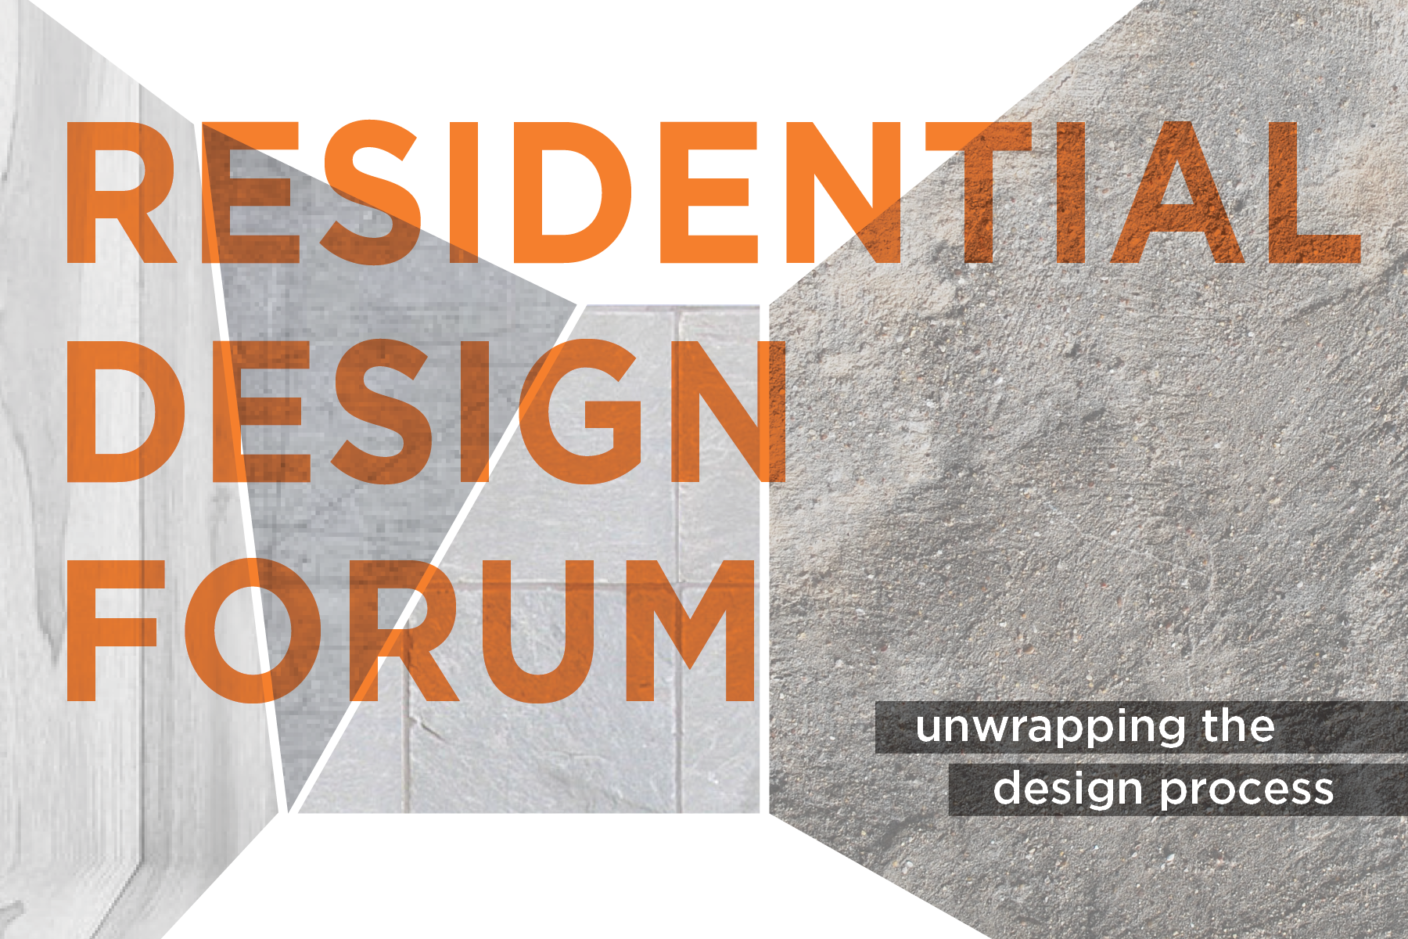 Residential Design Forum graphic